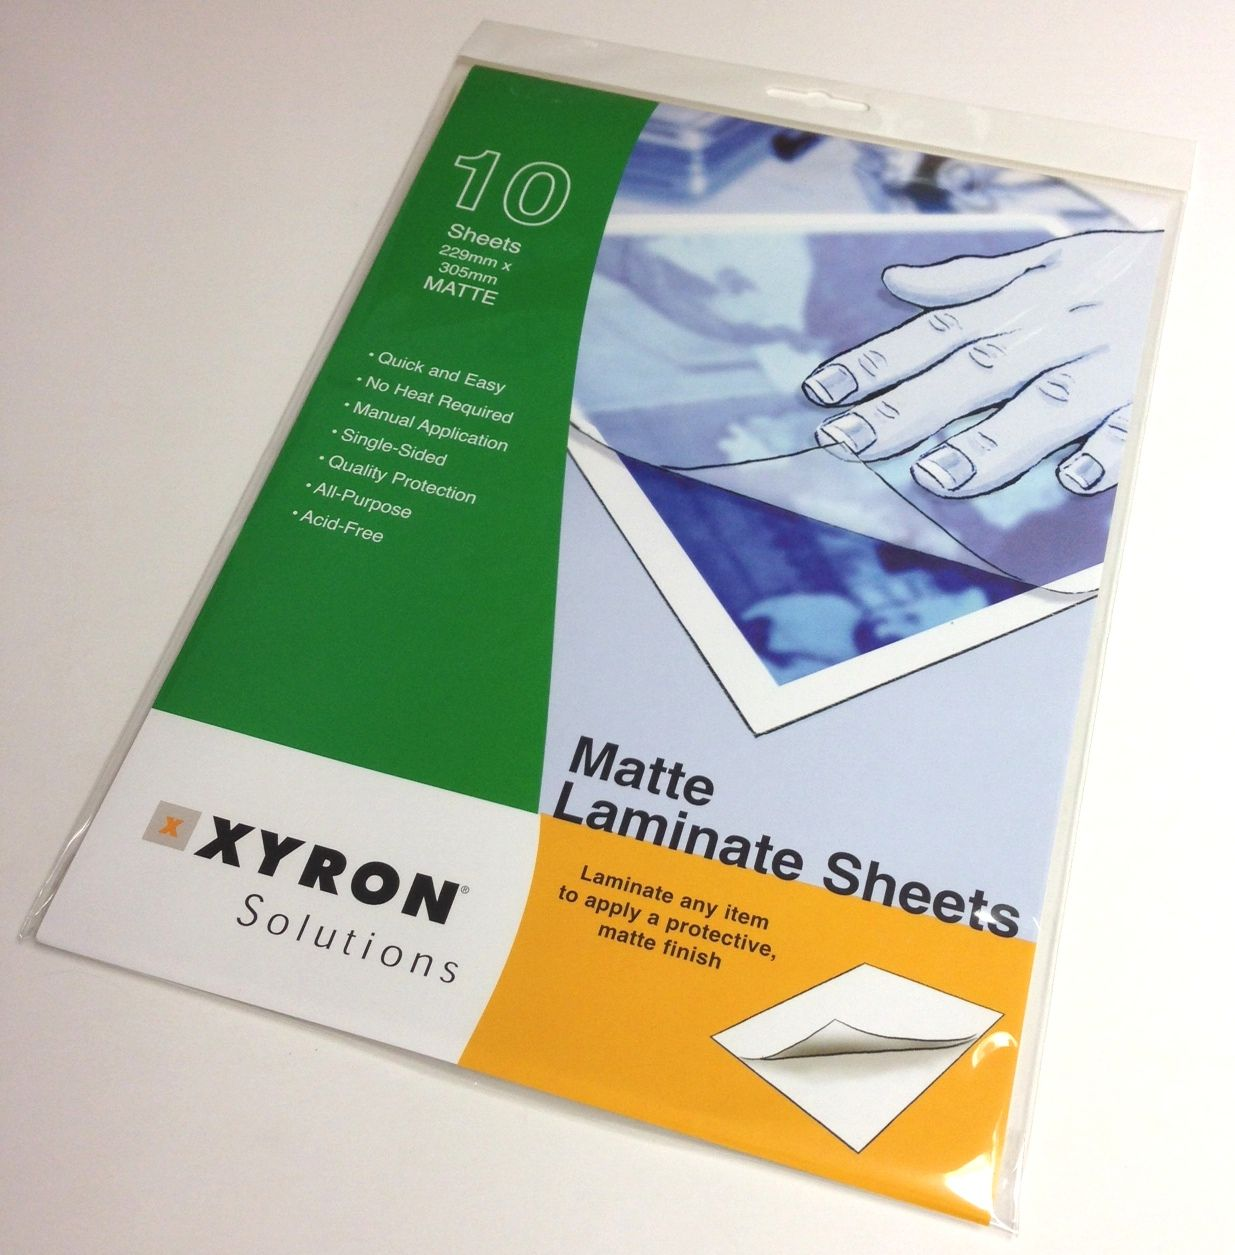 Xyron Laminate Sheets